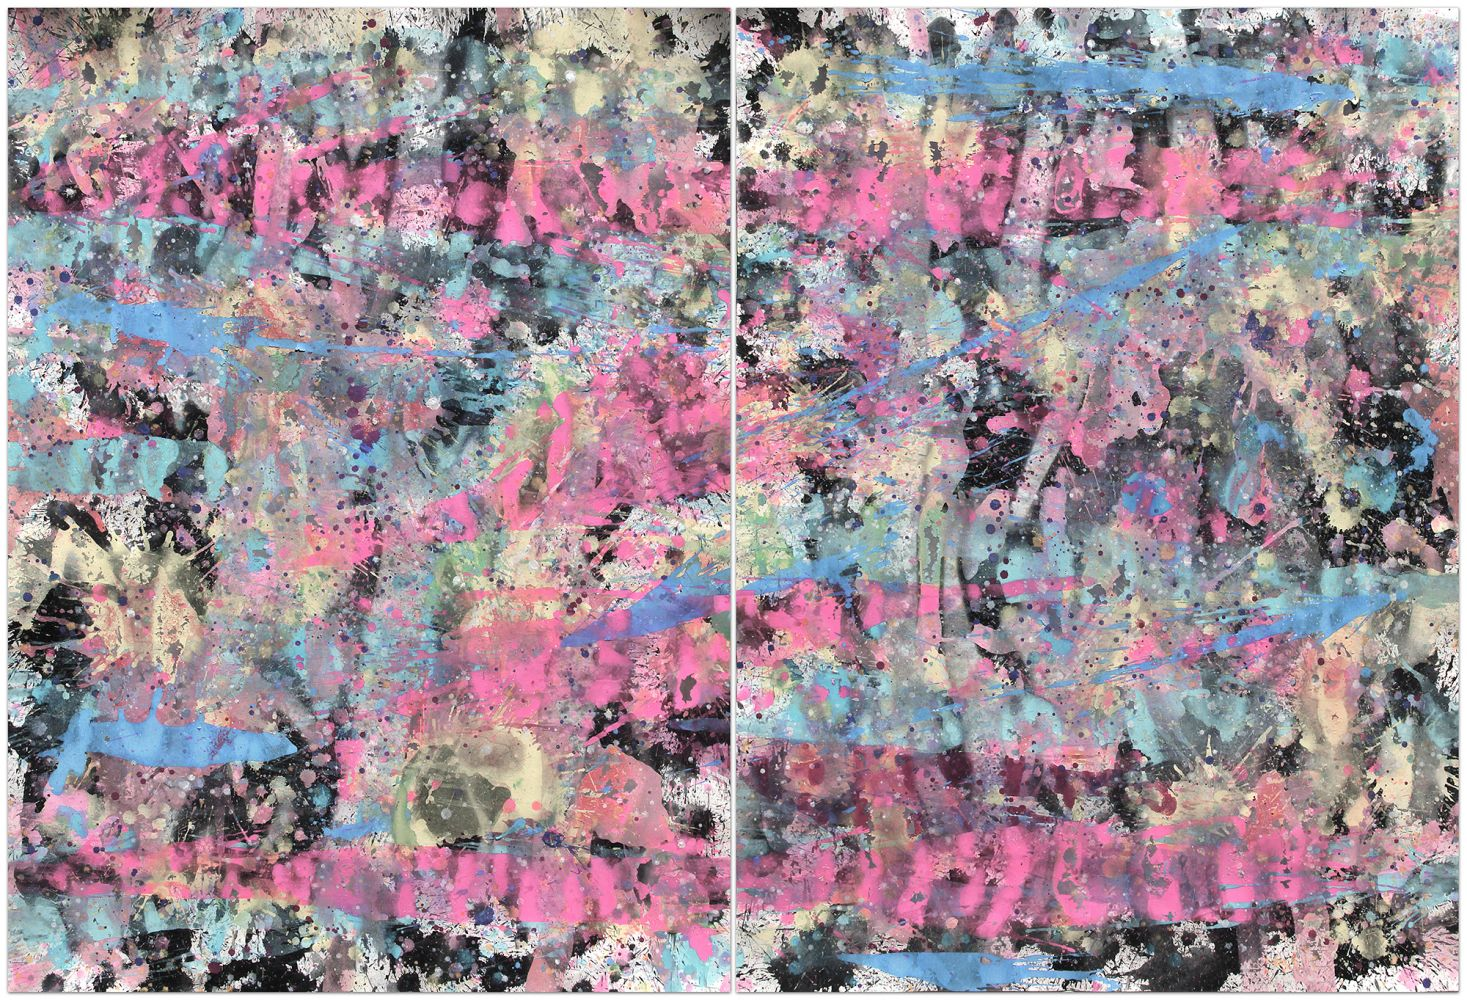 J. Steven Manolis, Miami Vice, 2014, gouache and watercolor on paper, diptych, 60 x 88 inches, For sale at Manolis Projects Art Gallery, Miami Fl